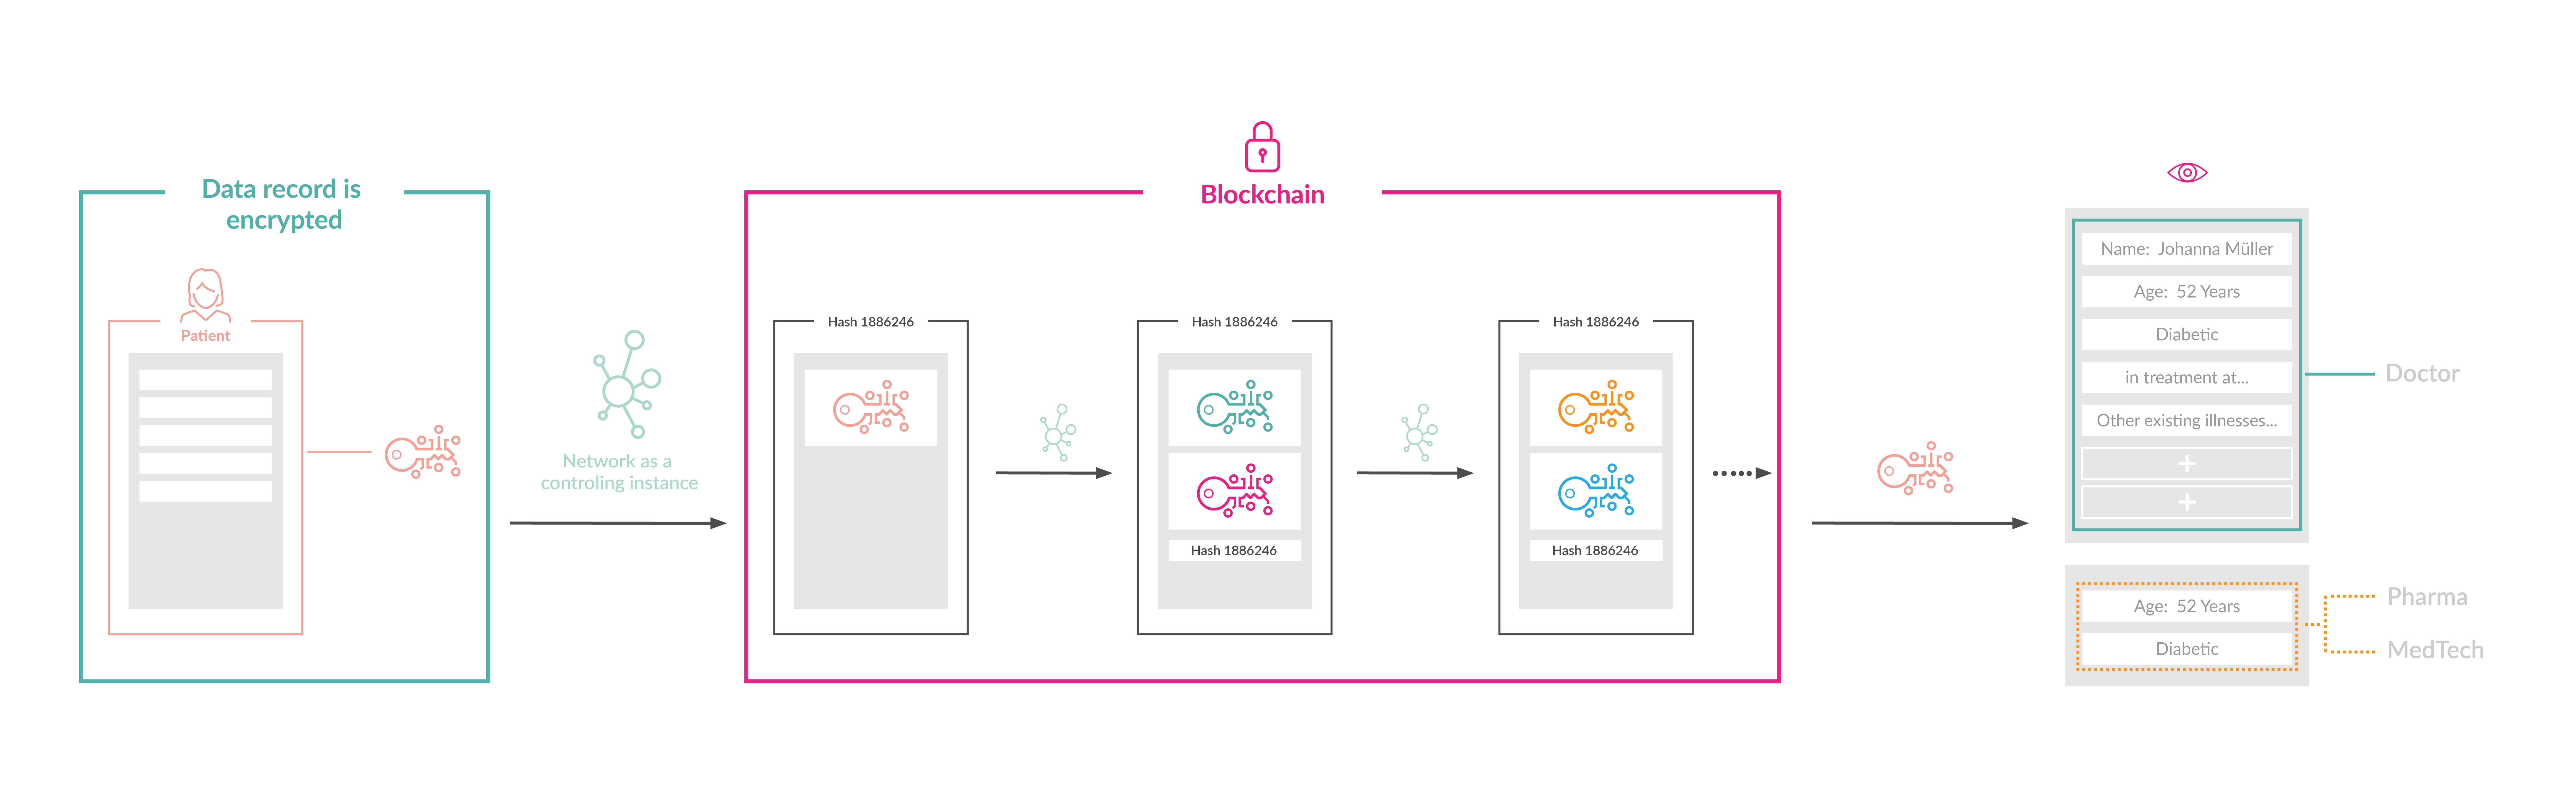 A diagram showing how data is encrypted and forwarded via the blockchain